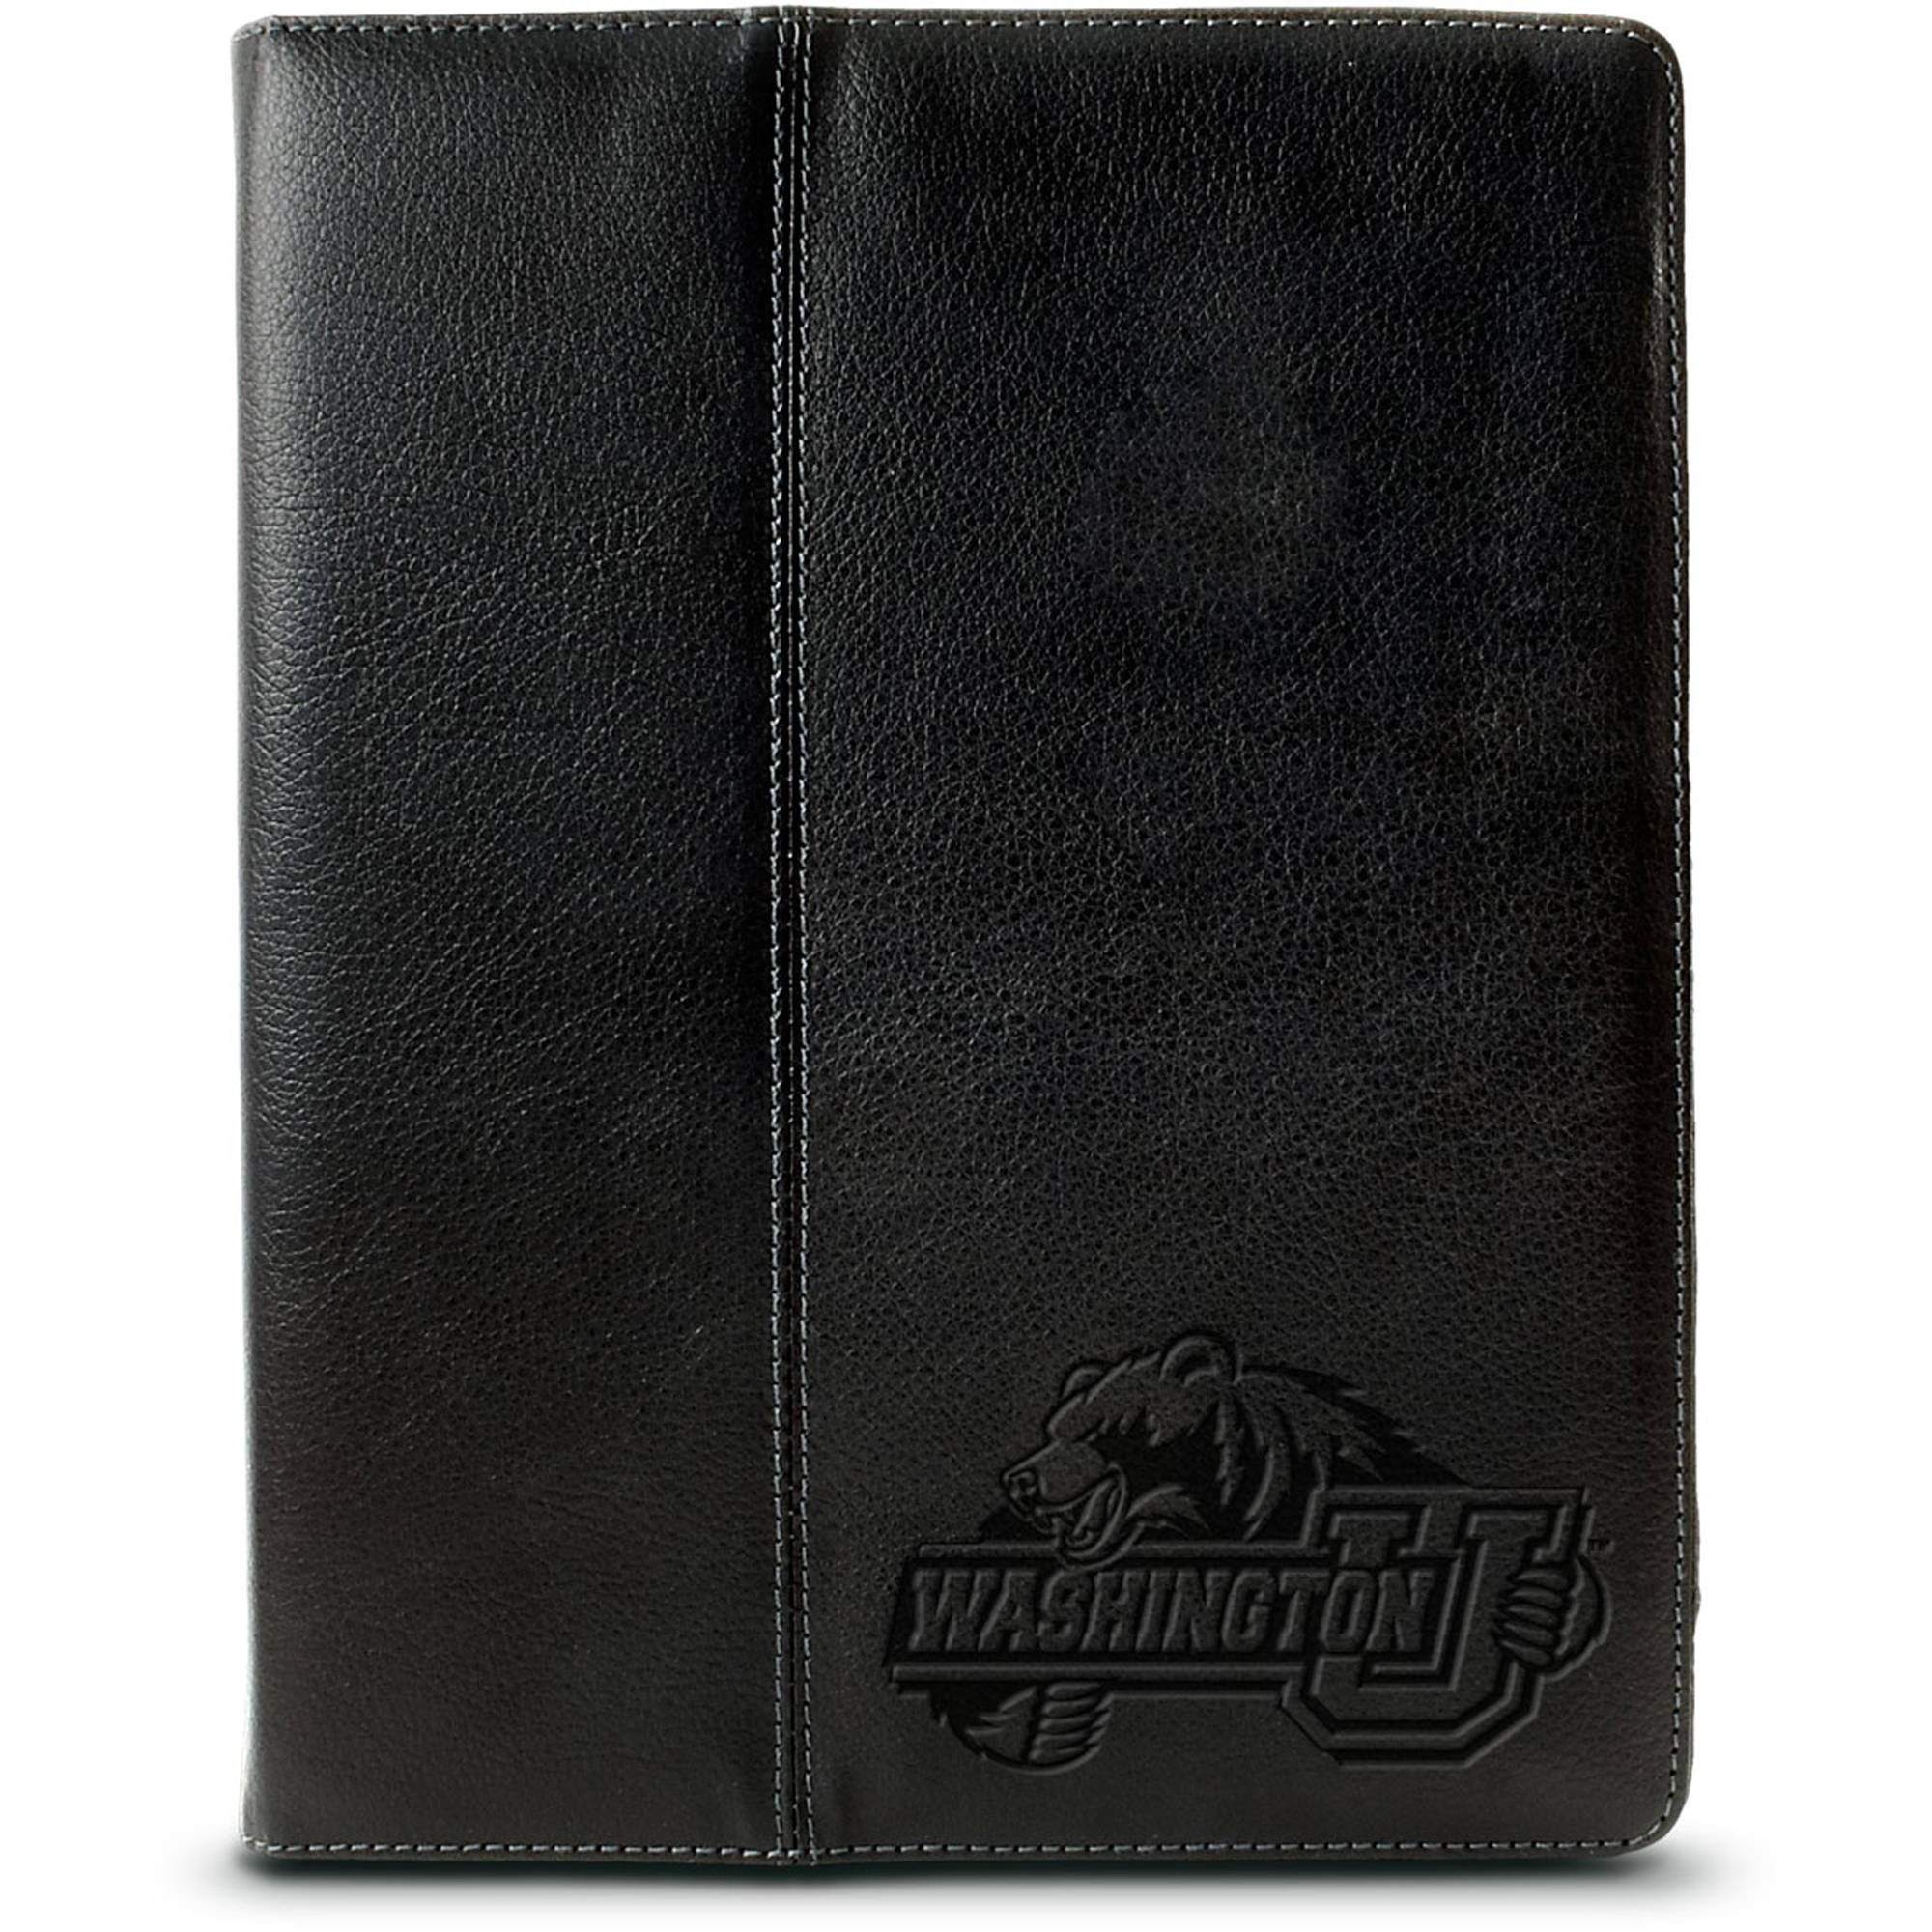 Centon iPad Leather Folio Case Washington University - St. Louis